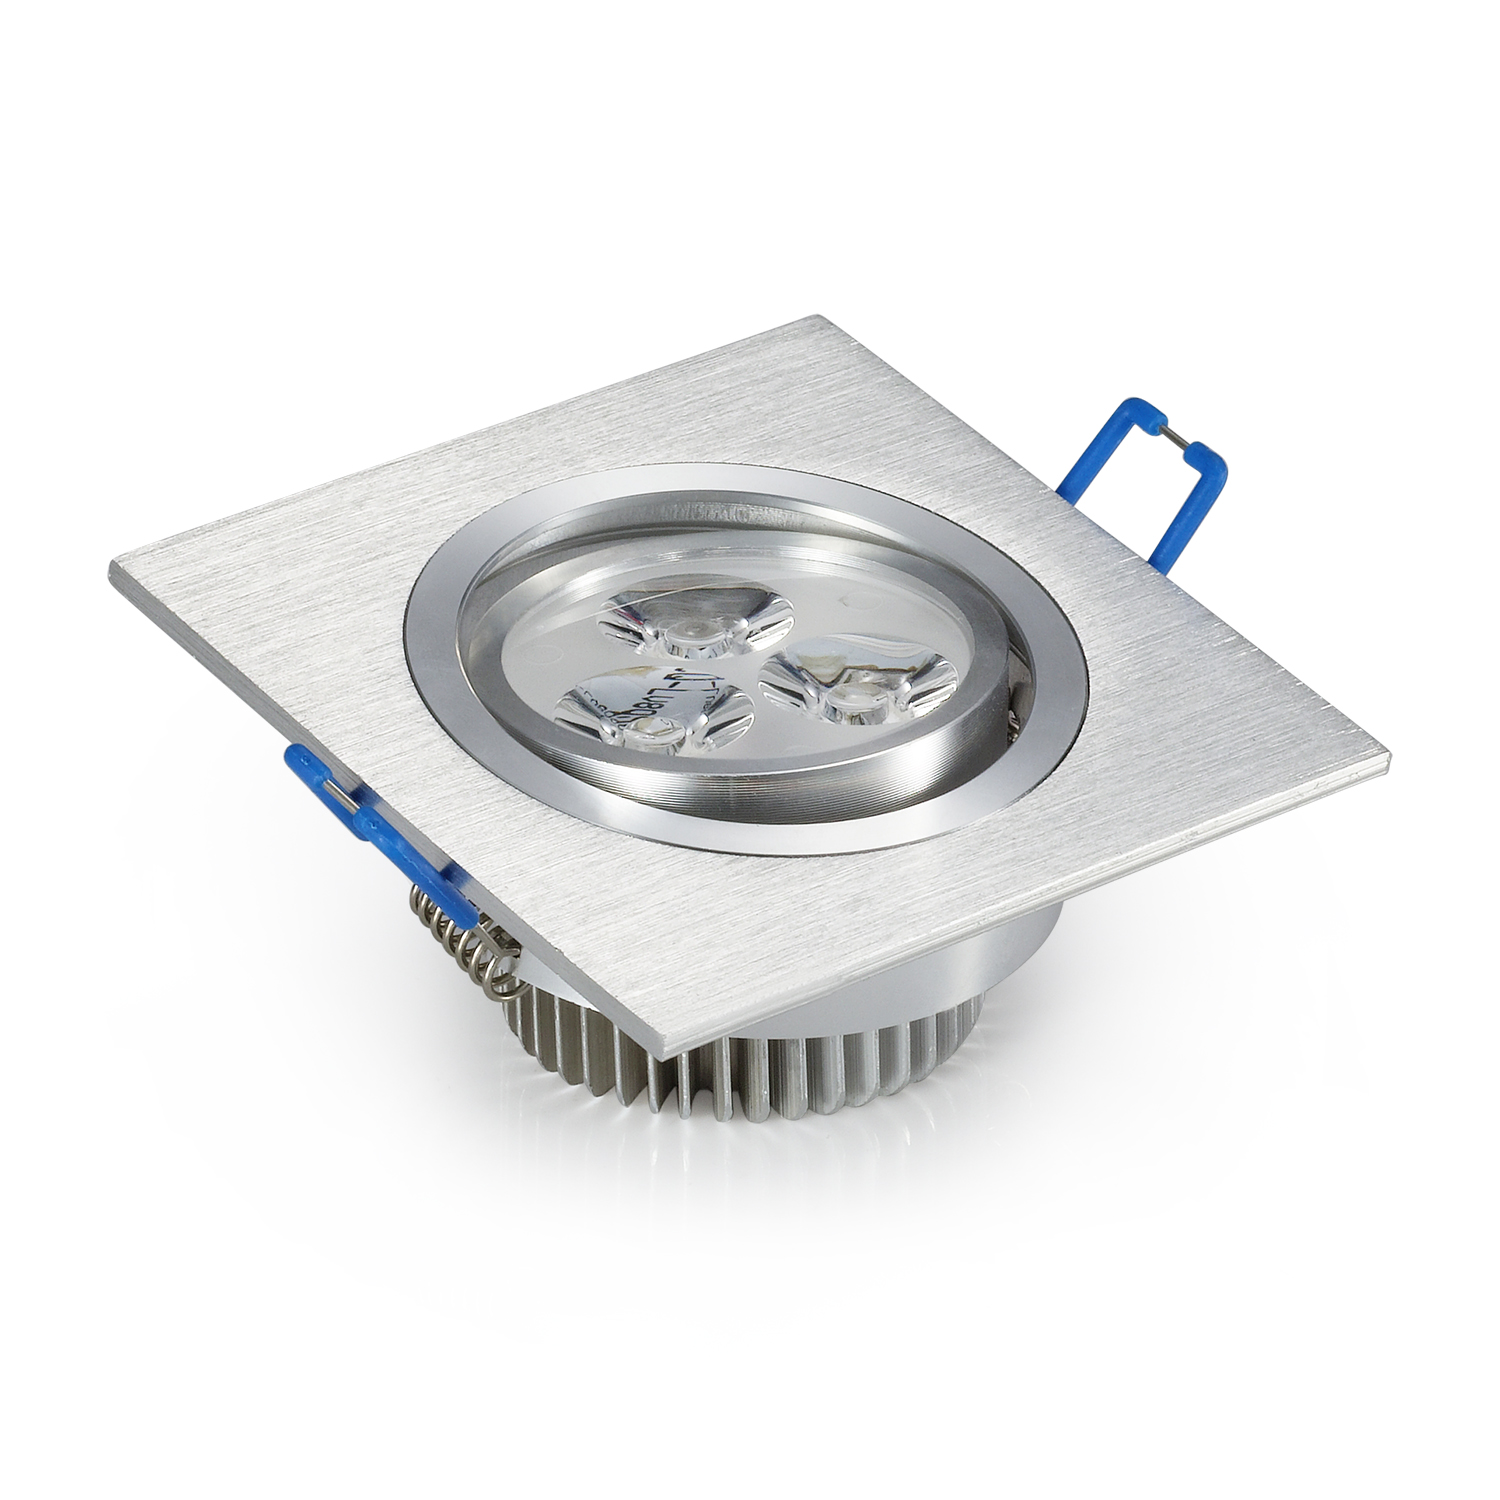 6 W High power verzonken led plafondlamp aluminium body led plafond spot lamp met goede kwaliteit